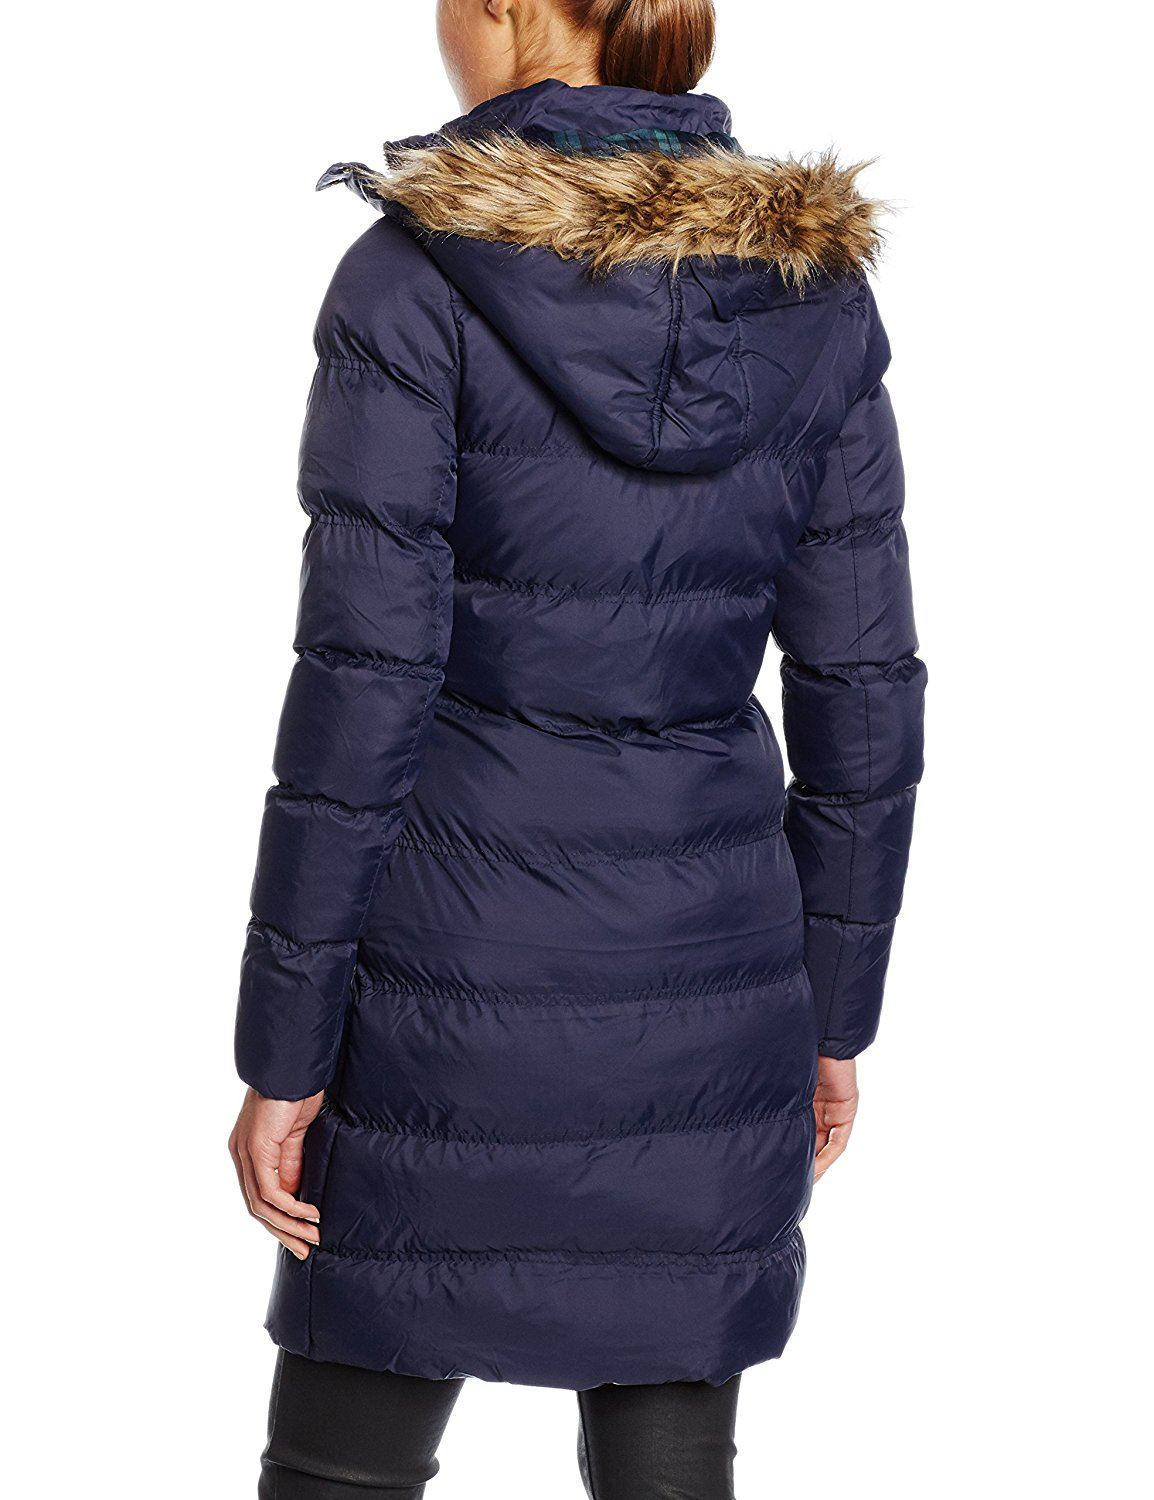 2d590c41c51c1 New Womens Plus Size Padded Puffer Jacket Hooded Faux Fur Winter ...